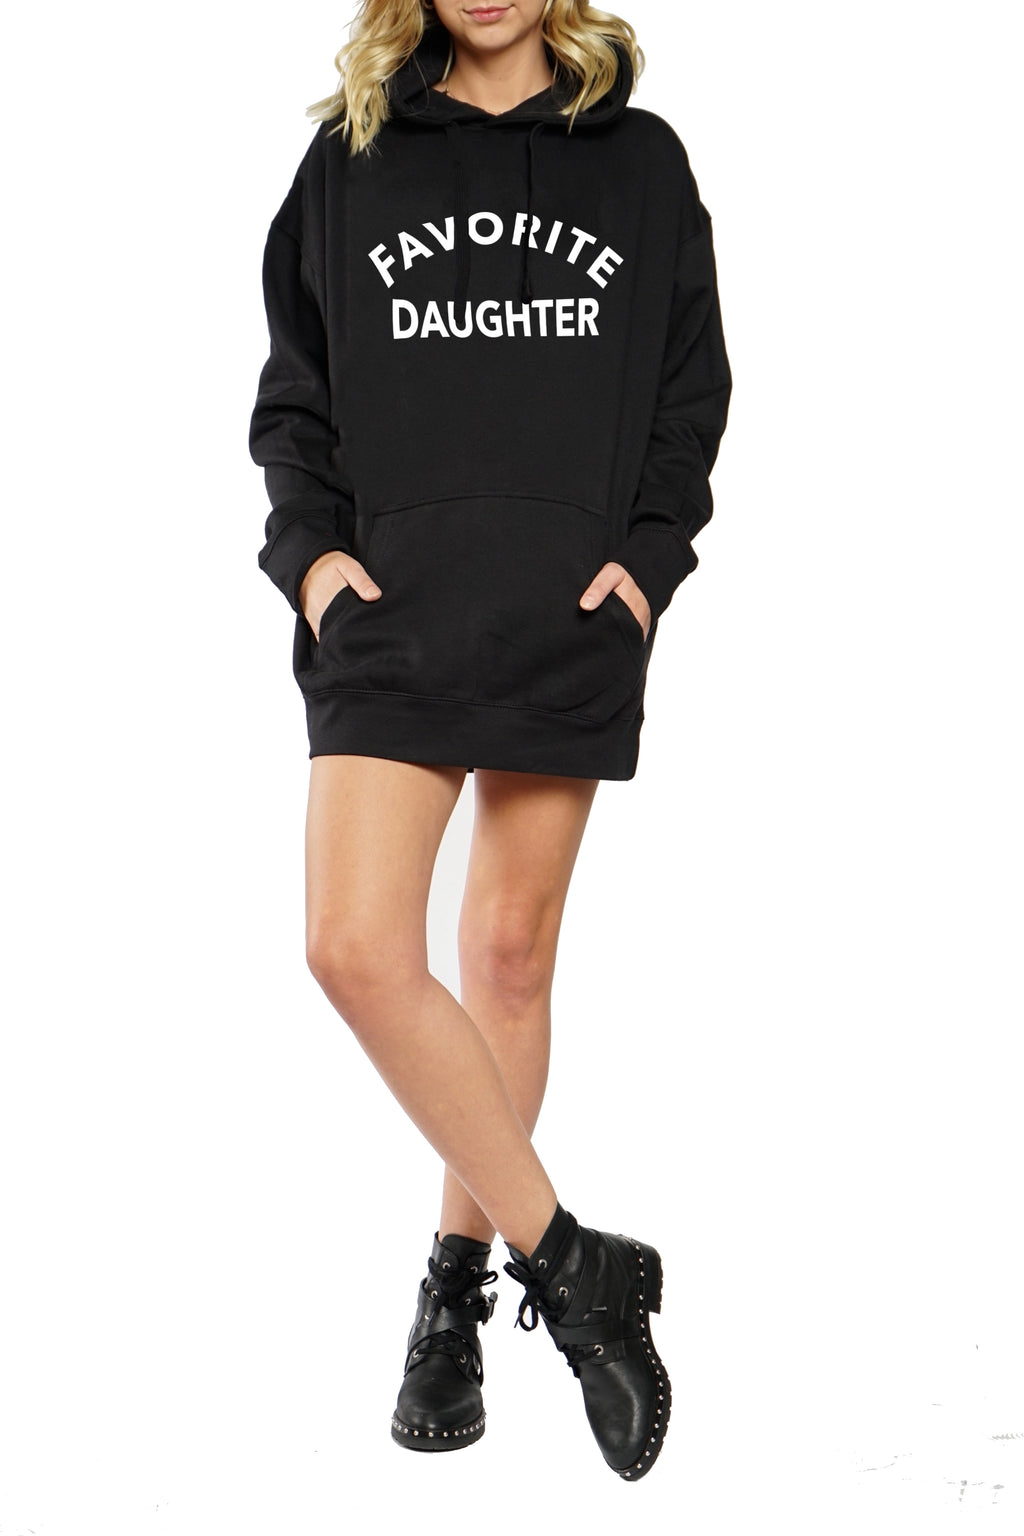 DRIX OVERSIZED HOODIE - Favorite Daughter